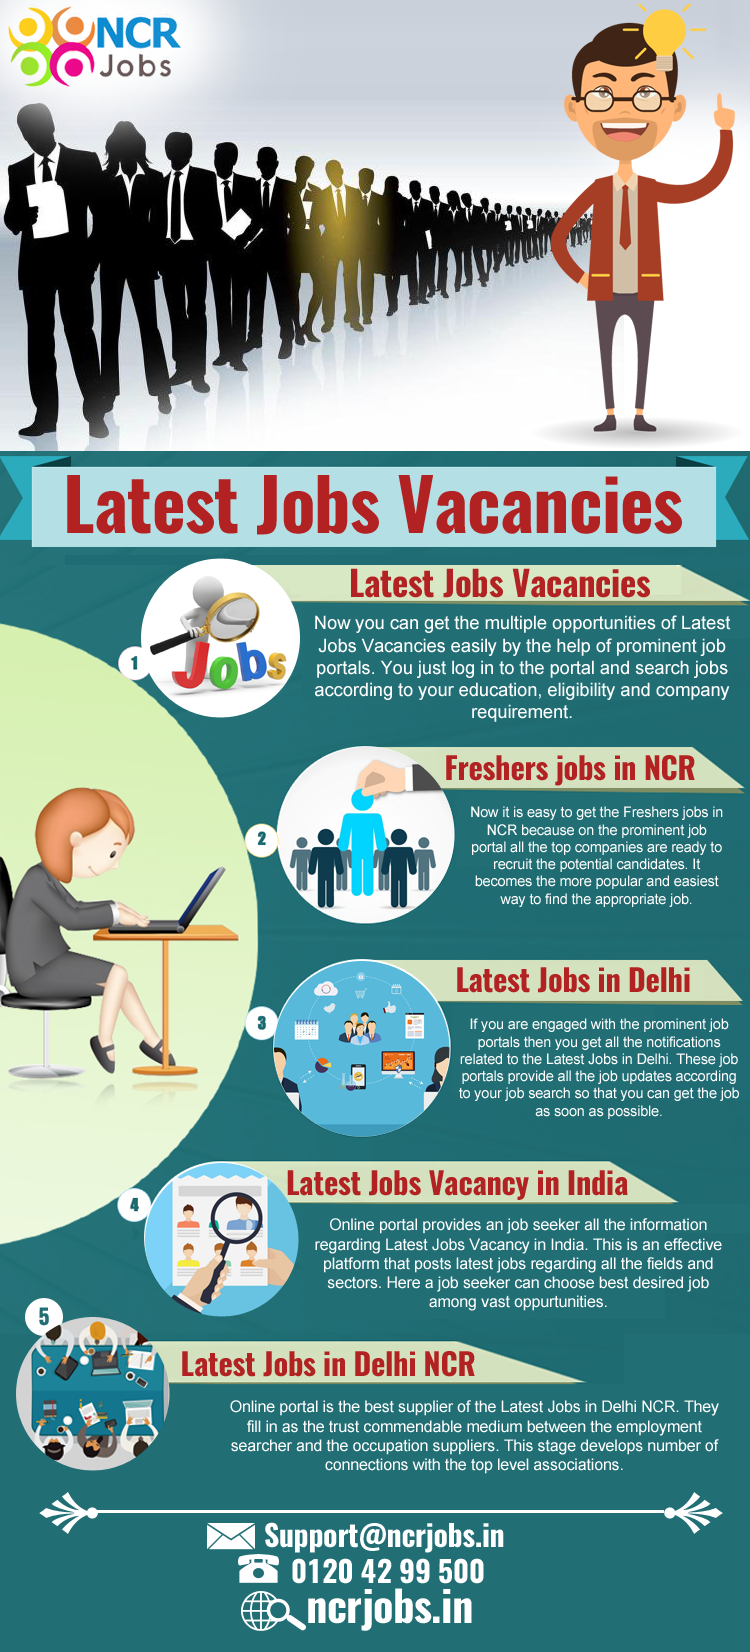 Now the jobs are available without any struggle because the online job portal provides the information about the latestjobsvacancies if you are l